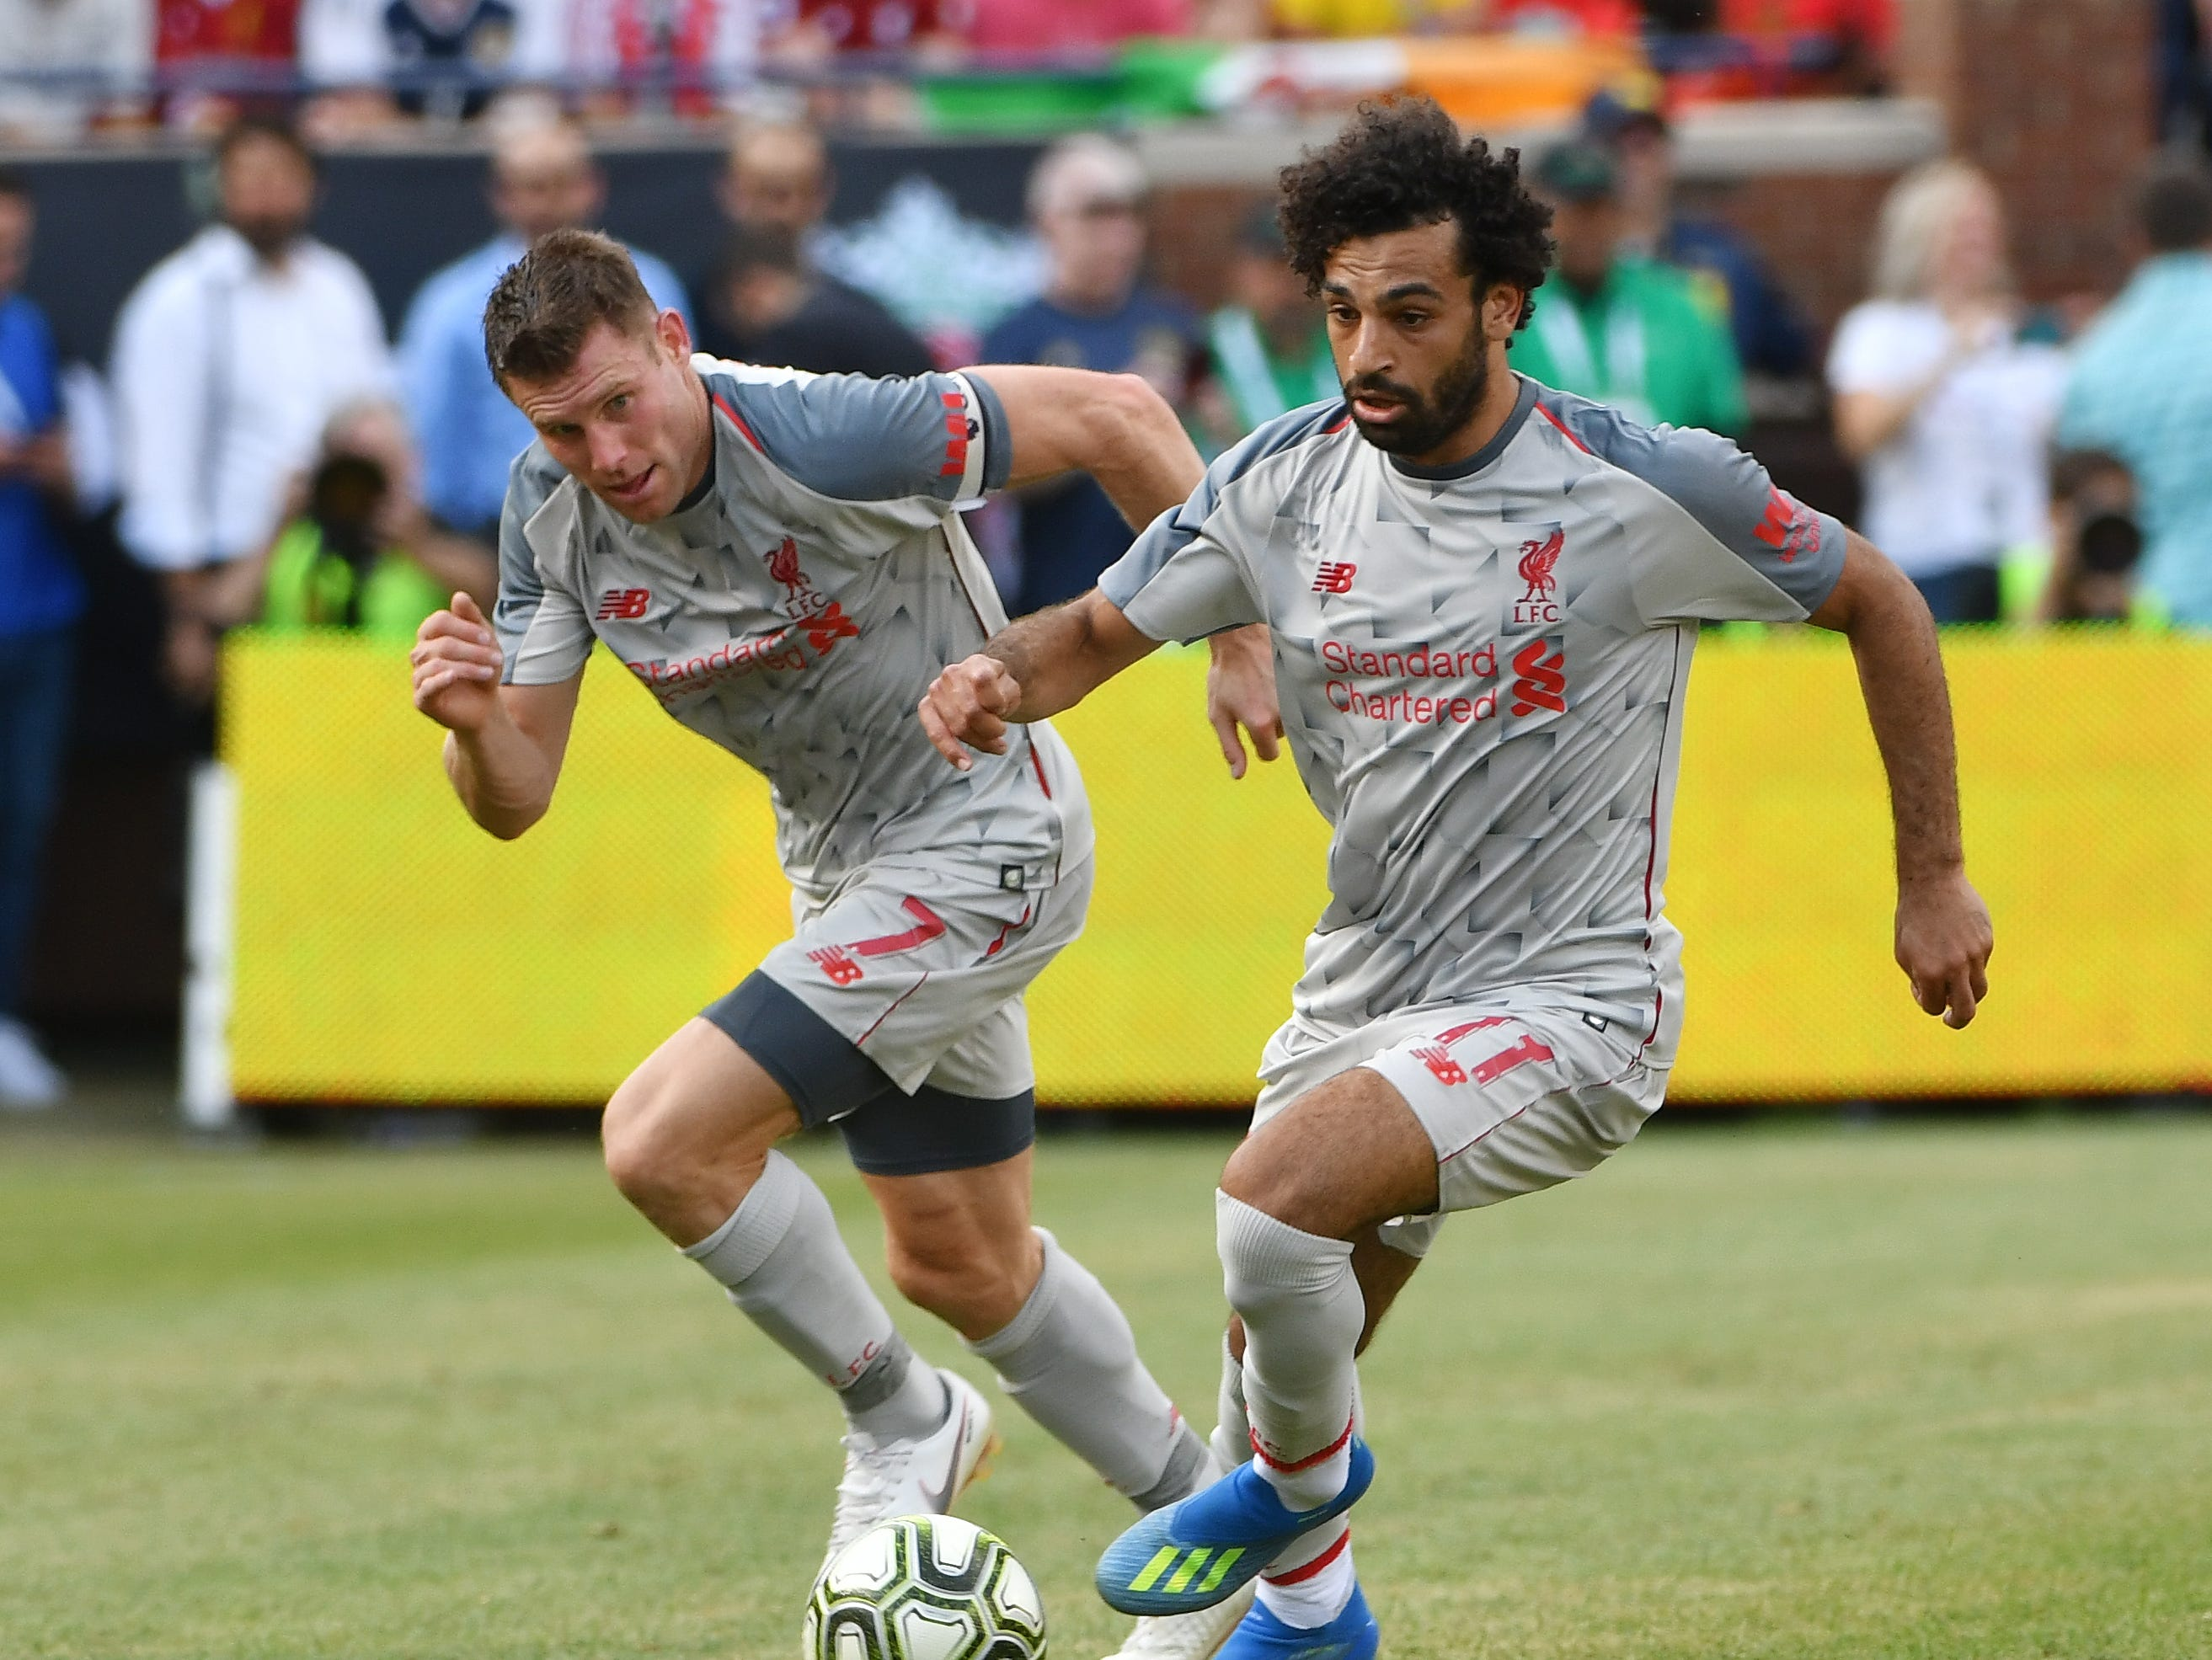 Liverpool's James Milner and Mohamed Salah bring the ball up field in the first half.  I